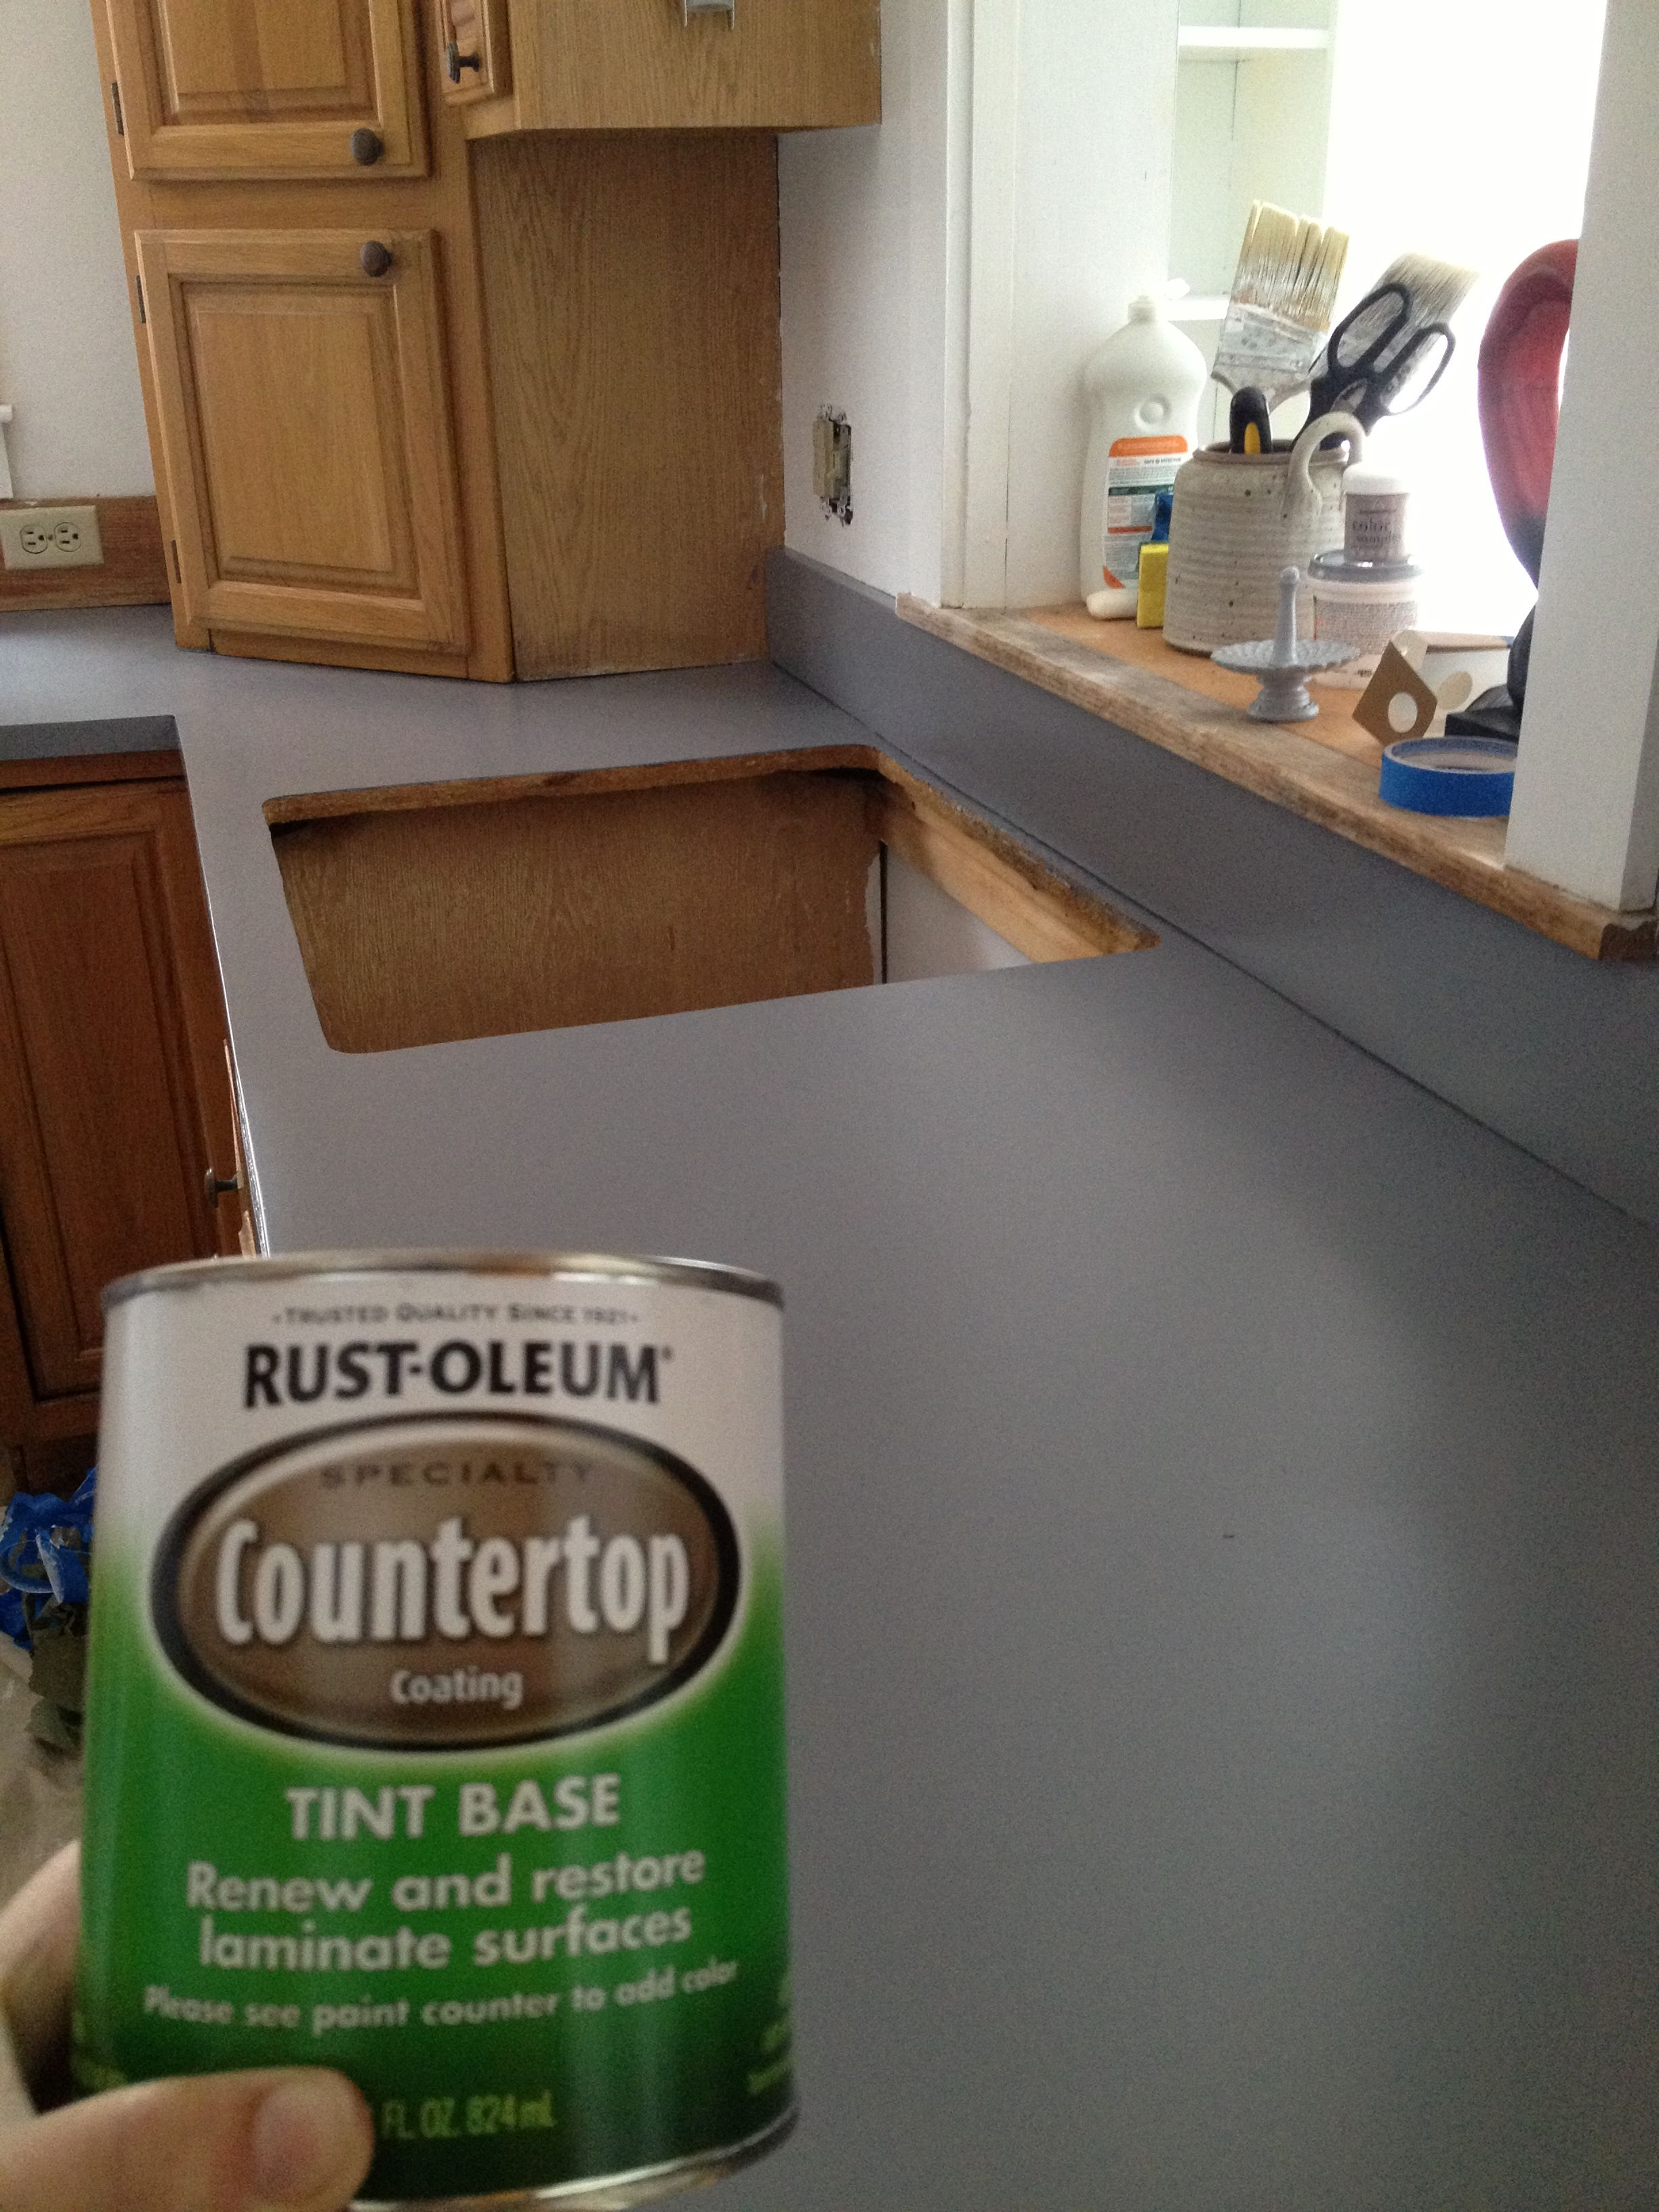 We Painted Our Counter Tops With Rust Oleum Counter Top Coating